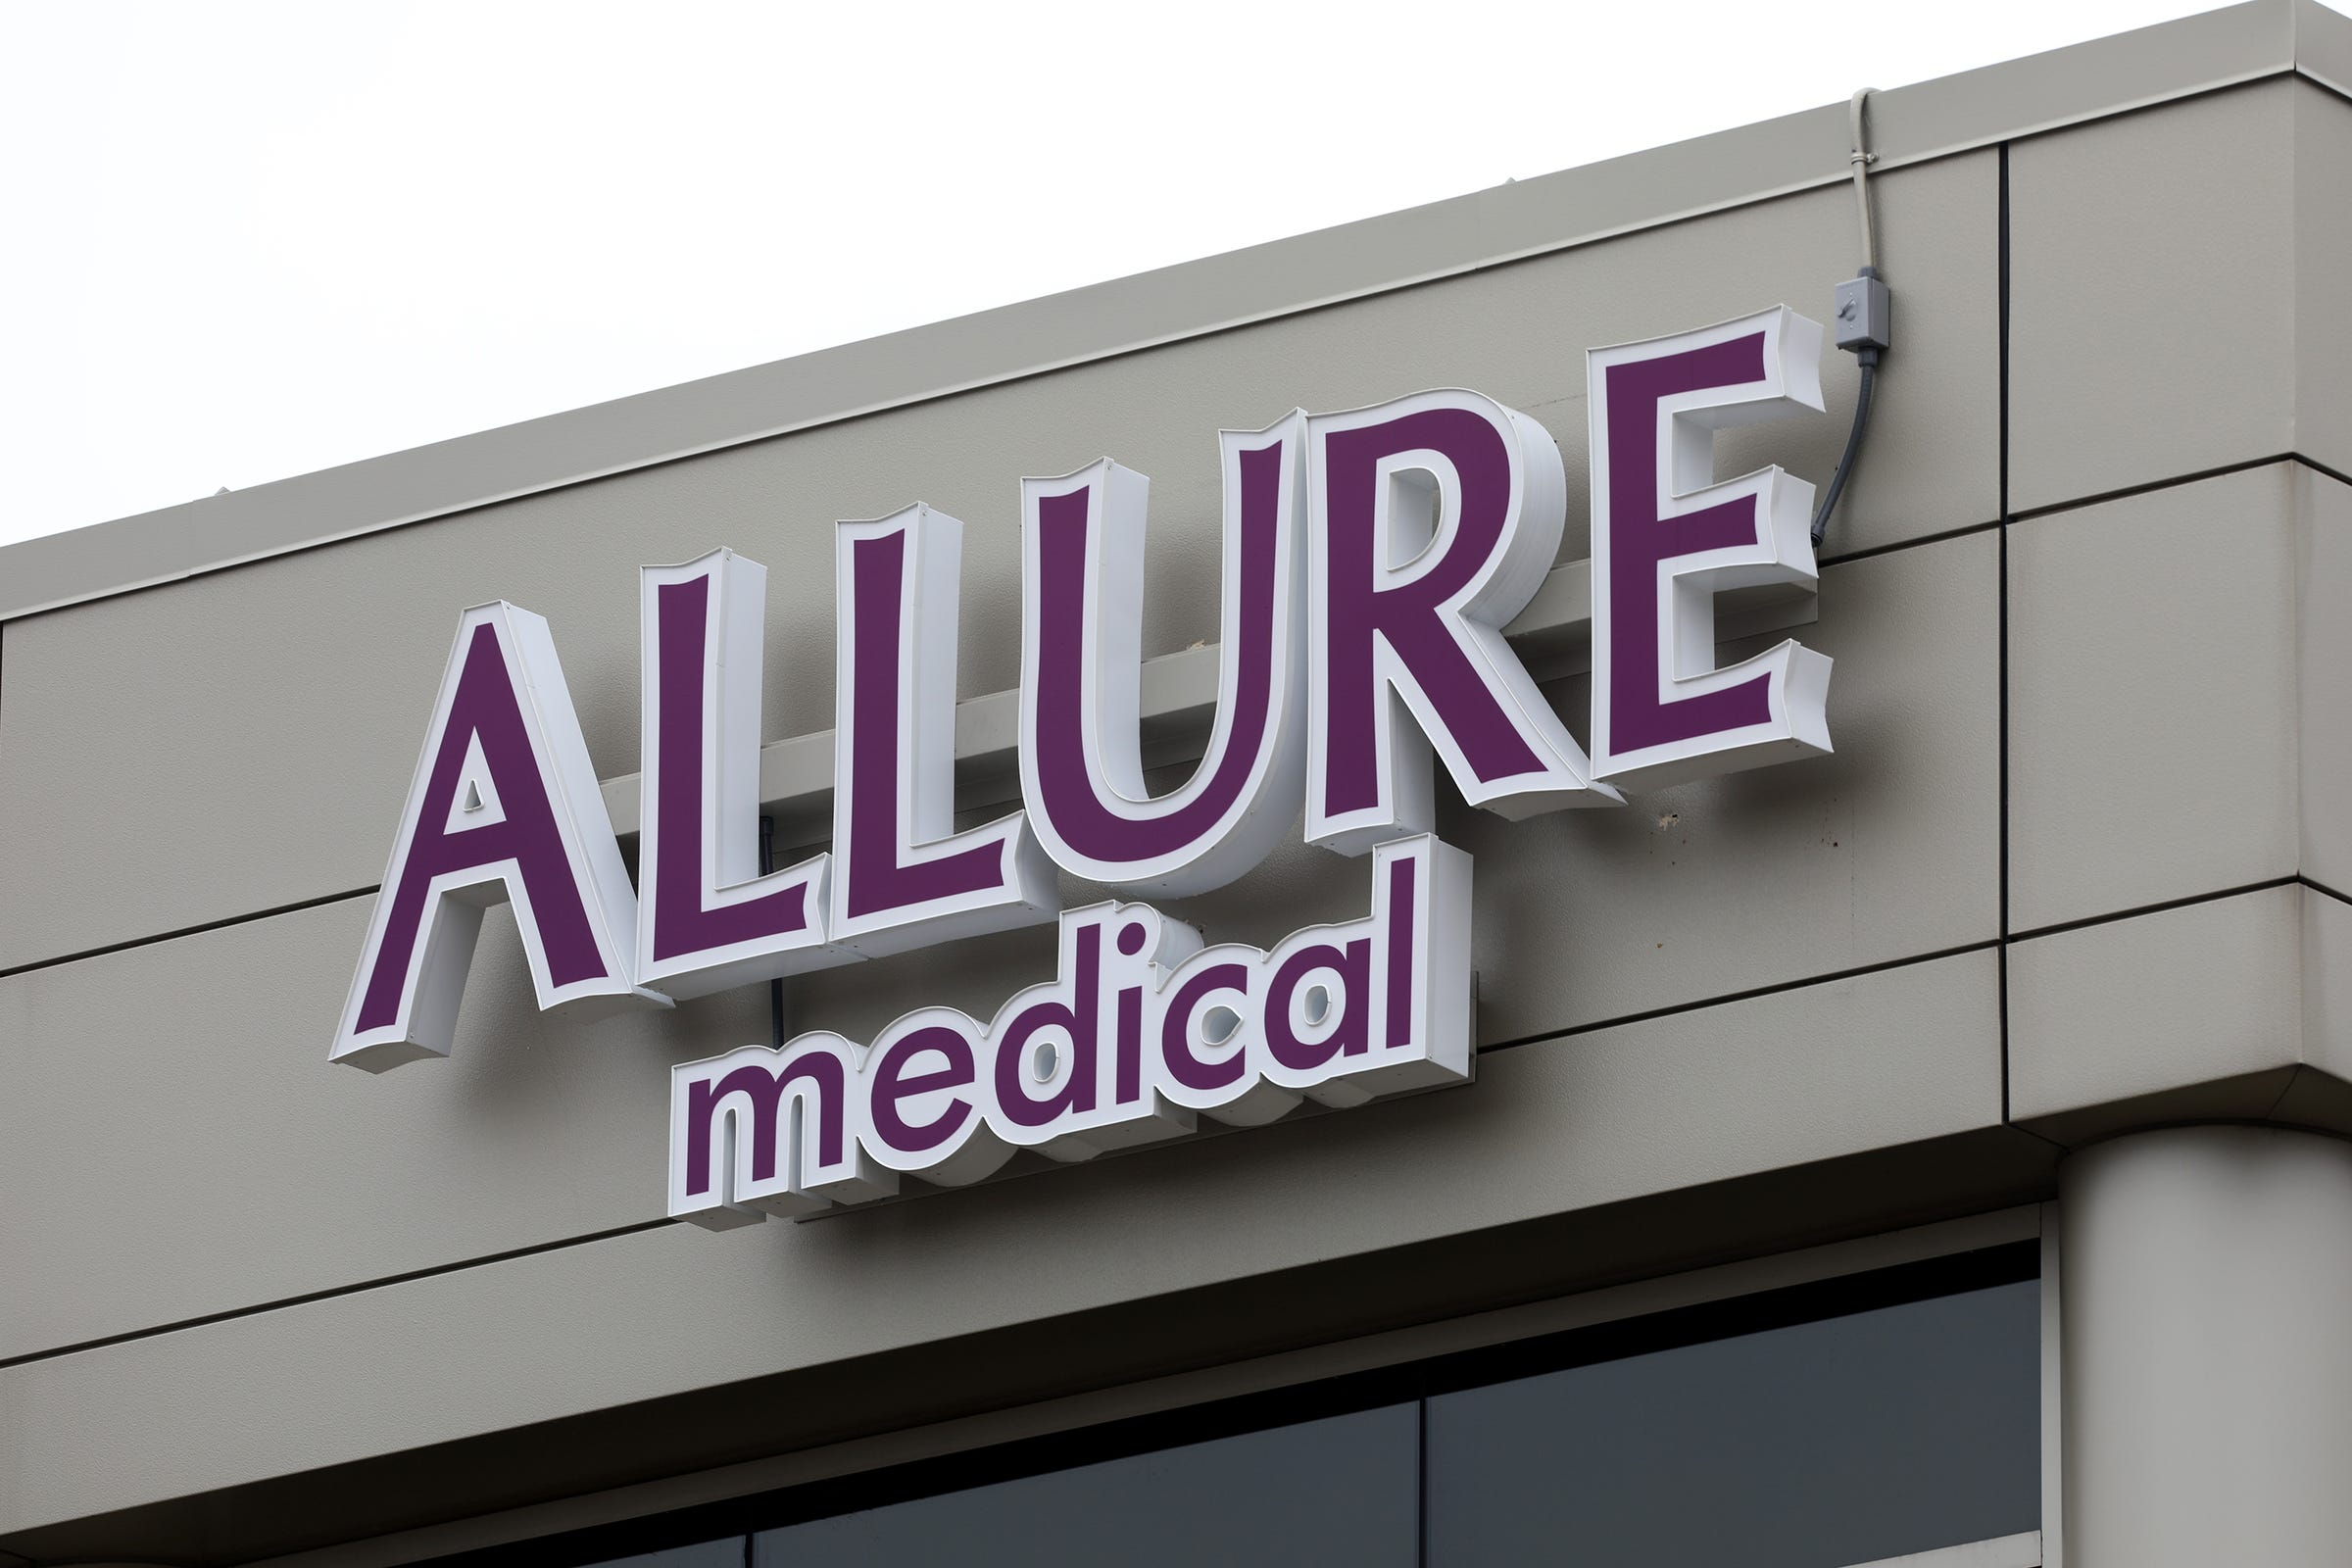 Allure Medical Spa Founder Charged With Health Care Fraud